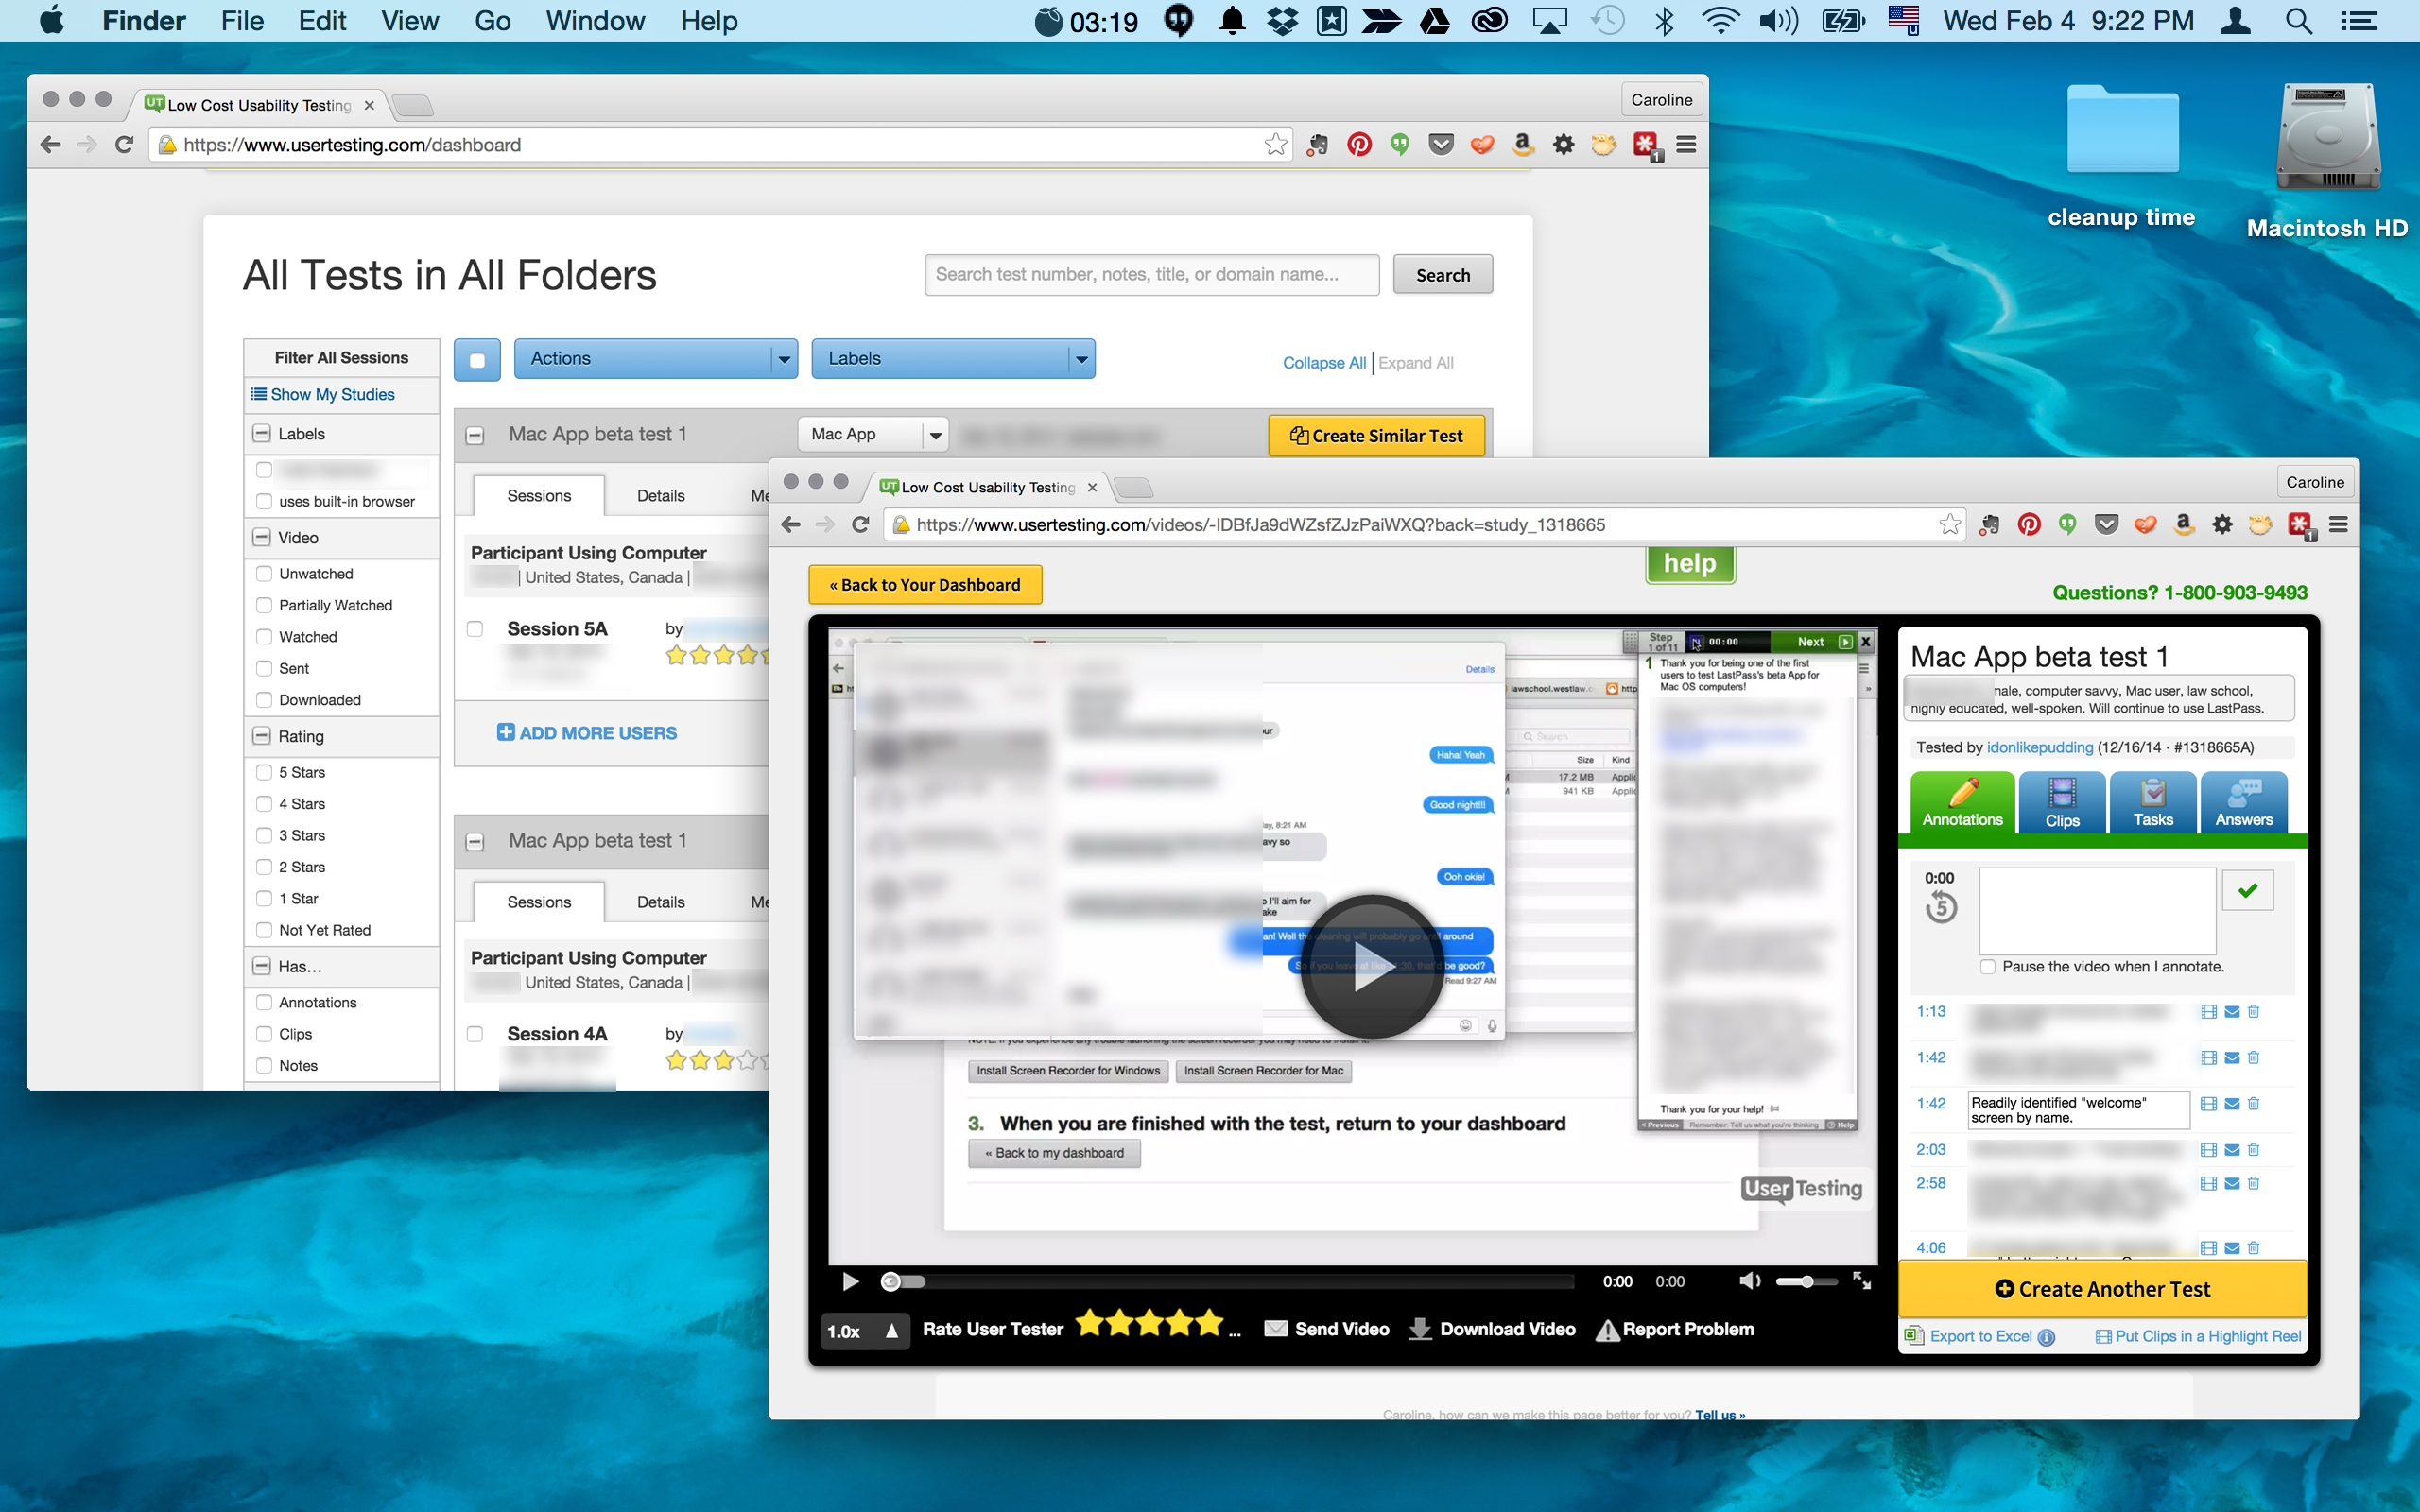 image of user tests in progress